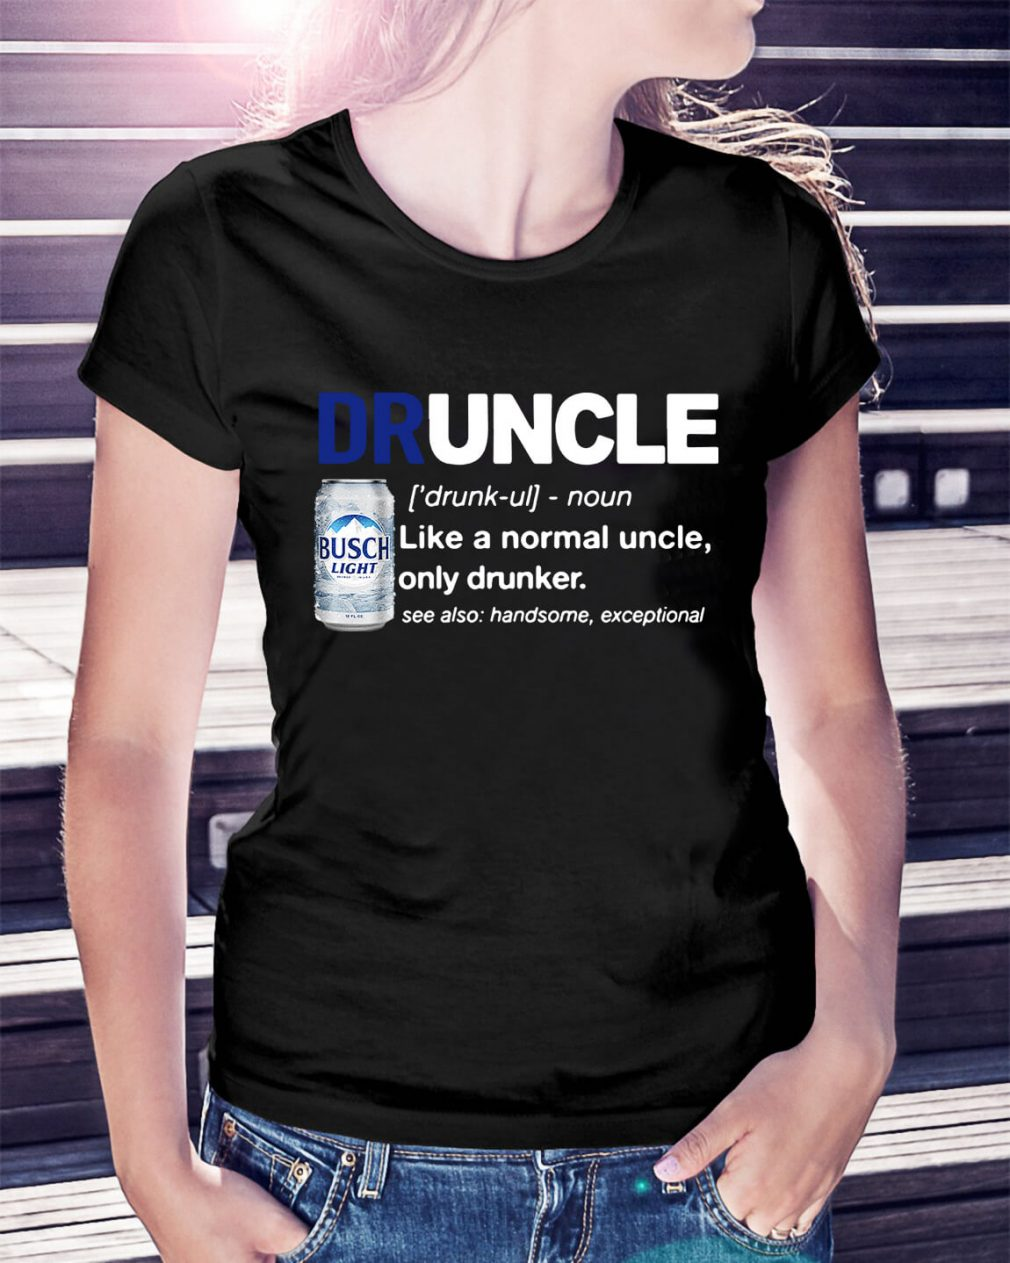 Druncle Busch Light definition like a normal uncle only drunker Ladies Tee